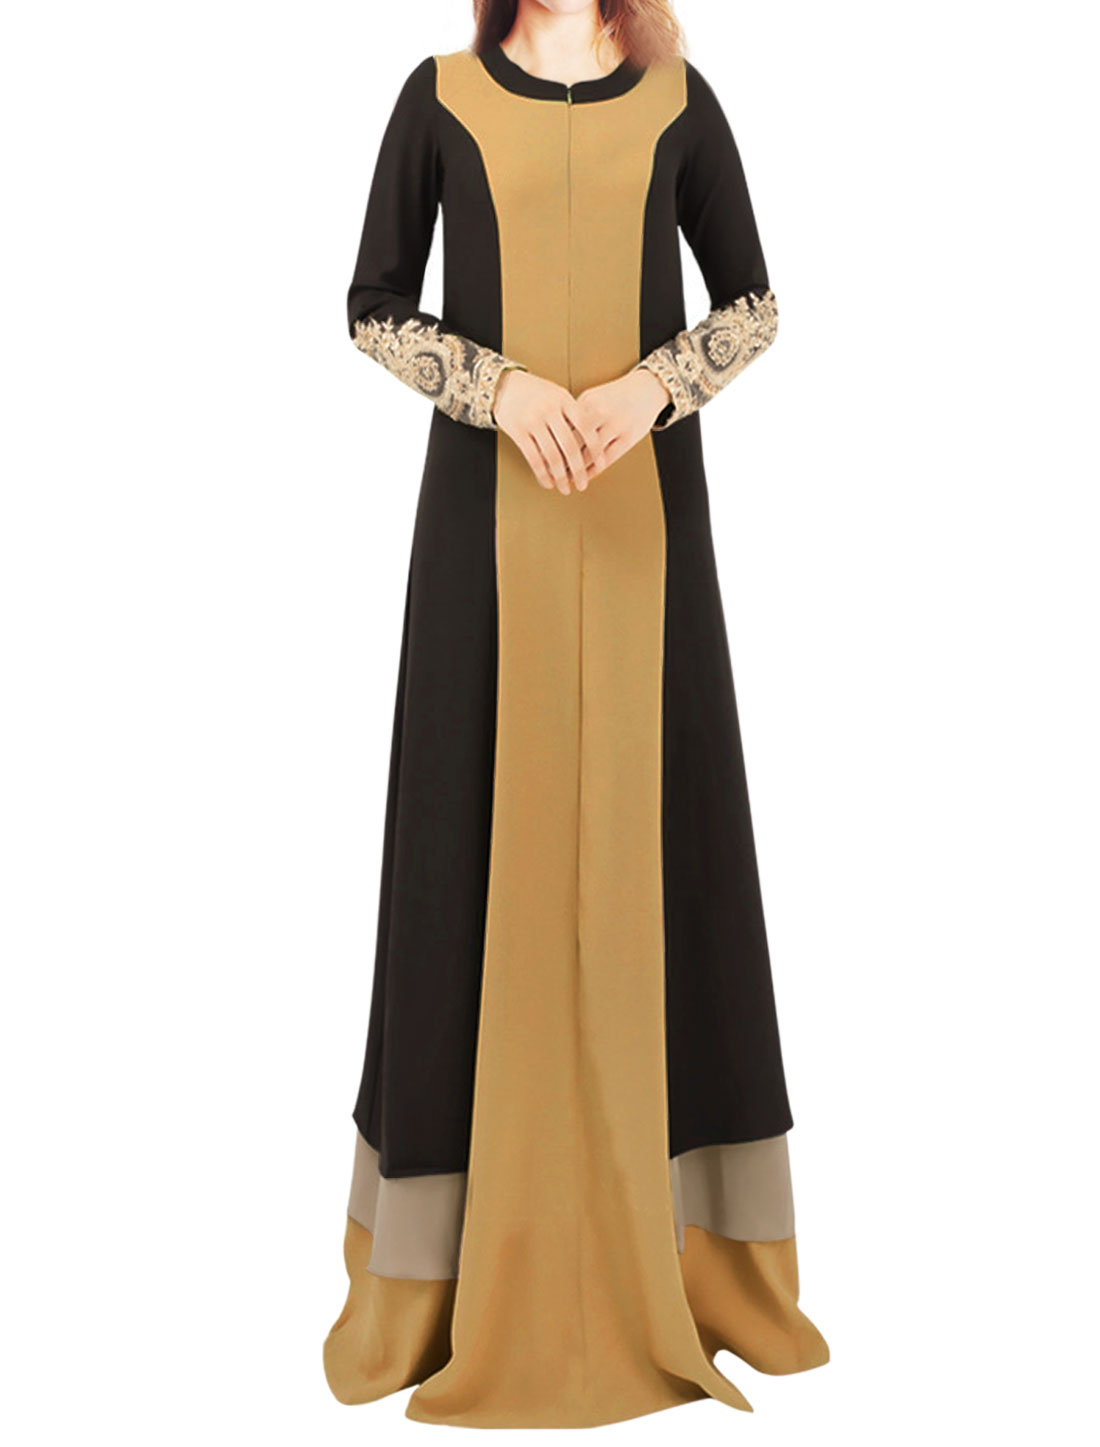 Women Long Sleeves Crochet Panel Contrast Color Tiered Maxi Dress Brown M